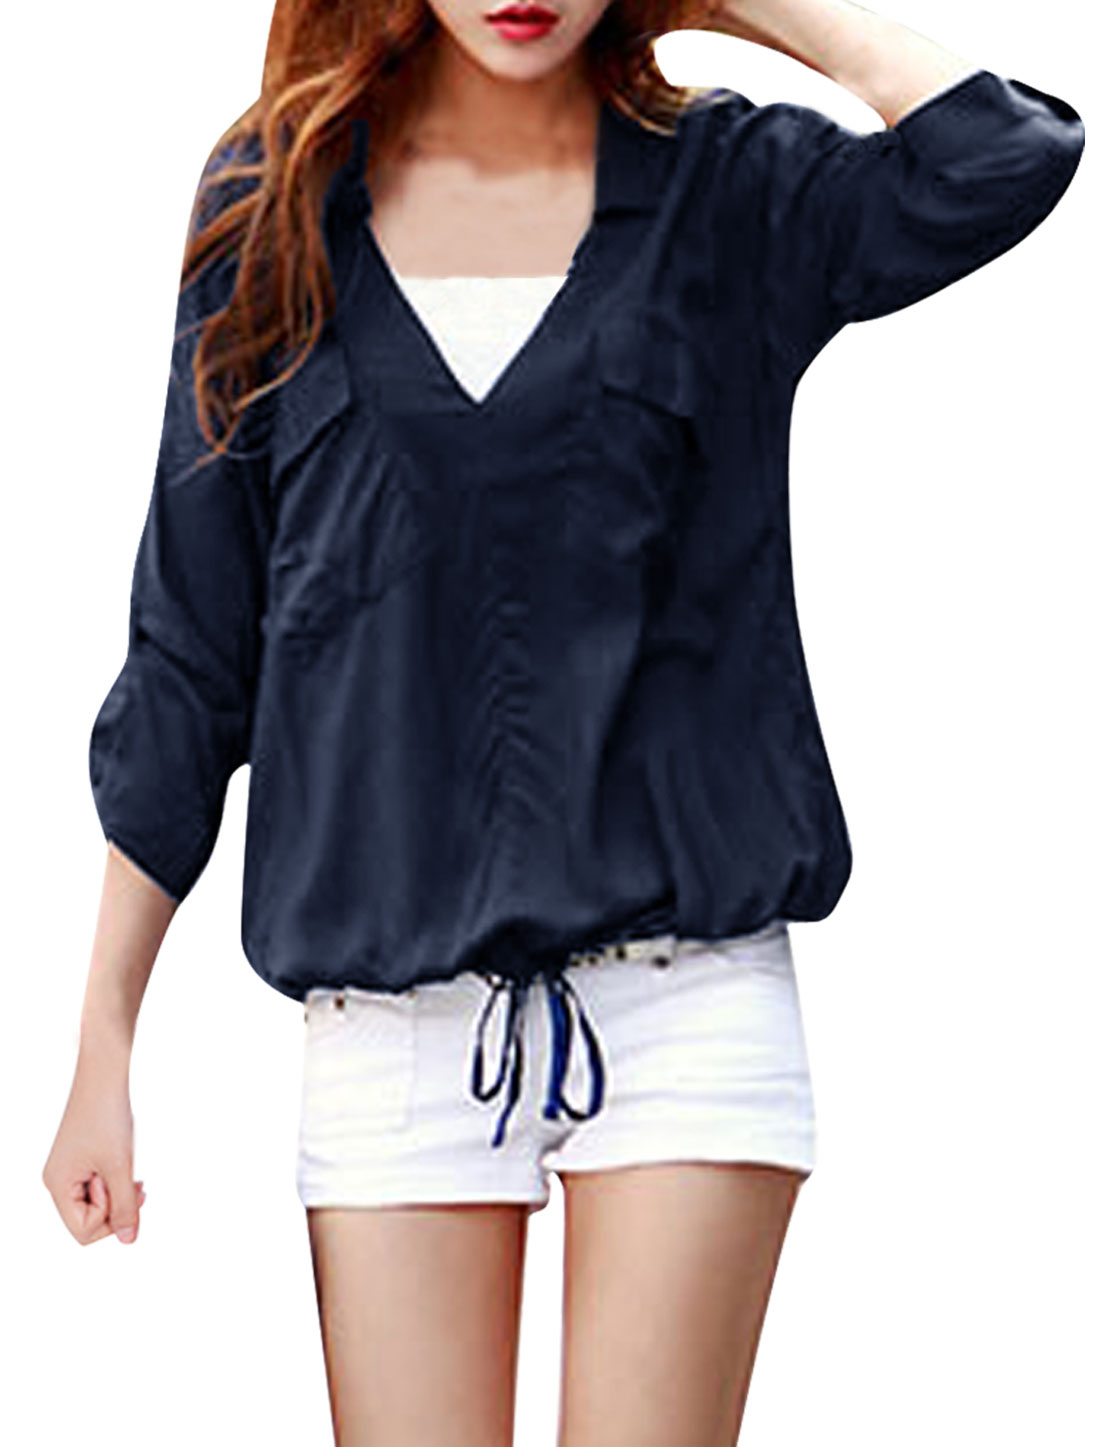 Women Pullover Roll Up Sleeve Drawstring Top Shirt Navy Blue S